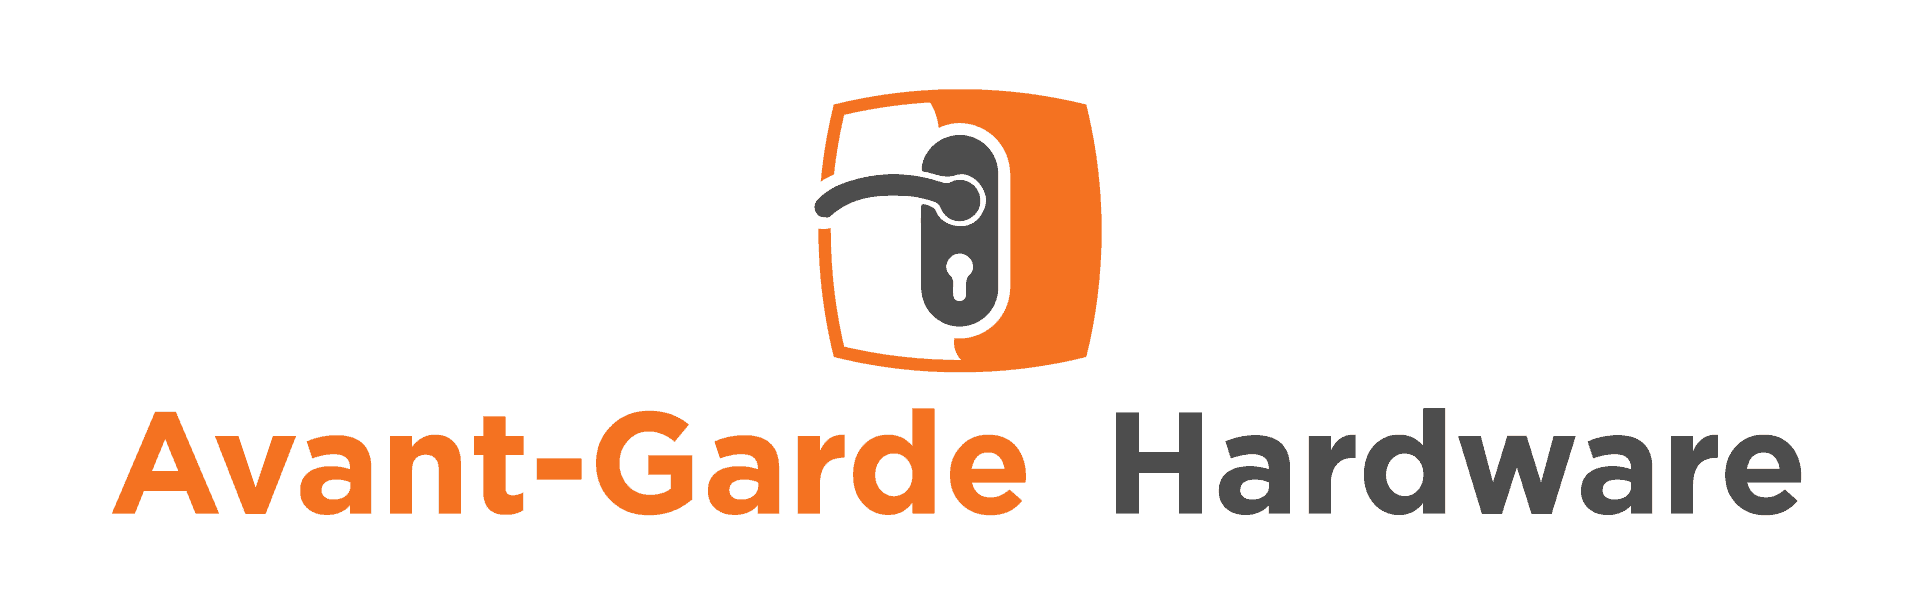 logo for Avant-Garde Hardware